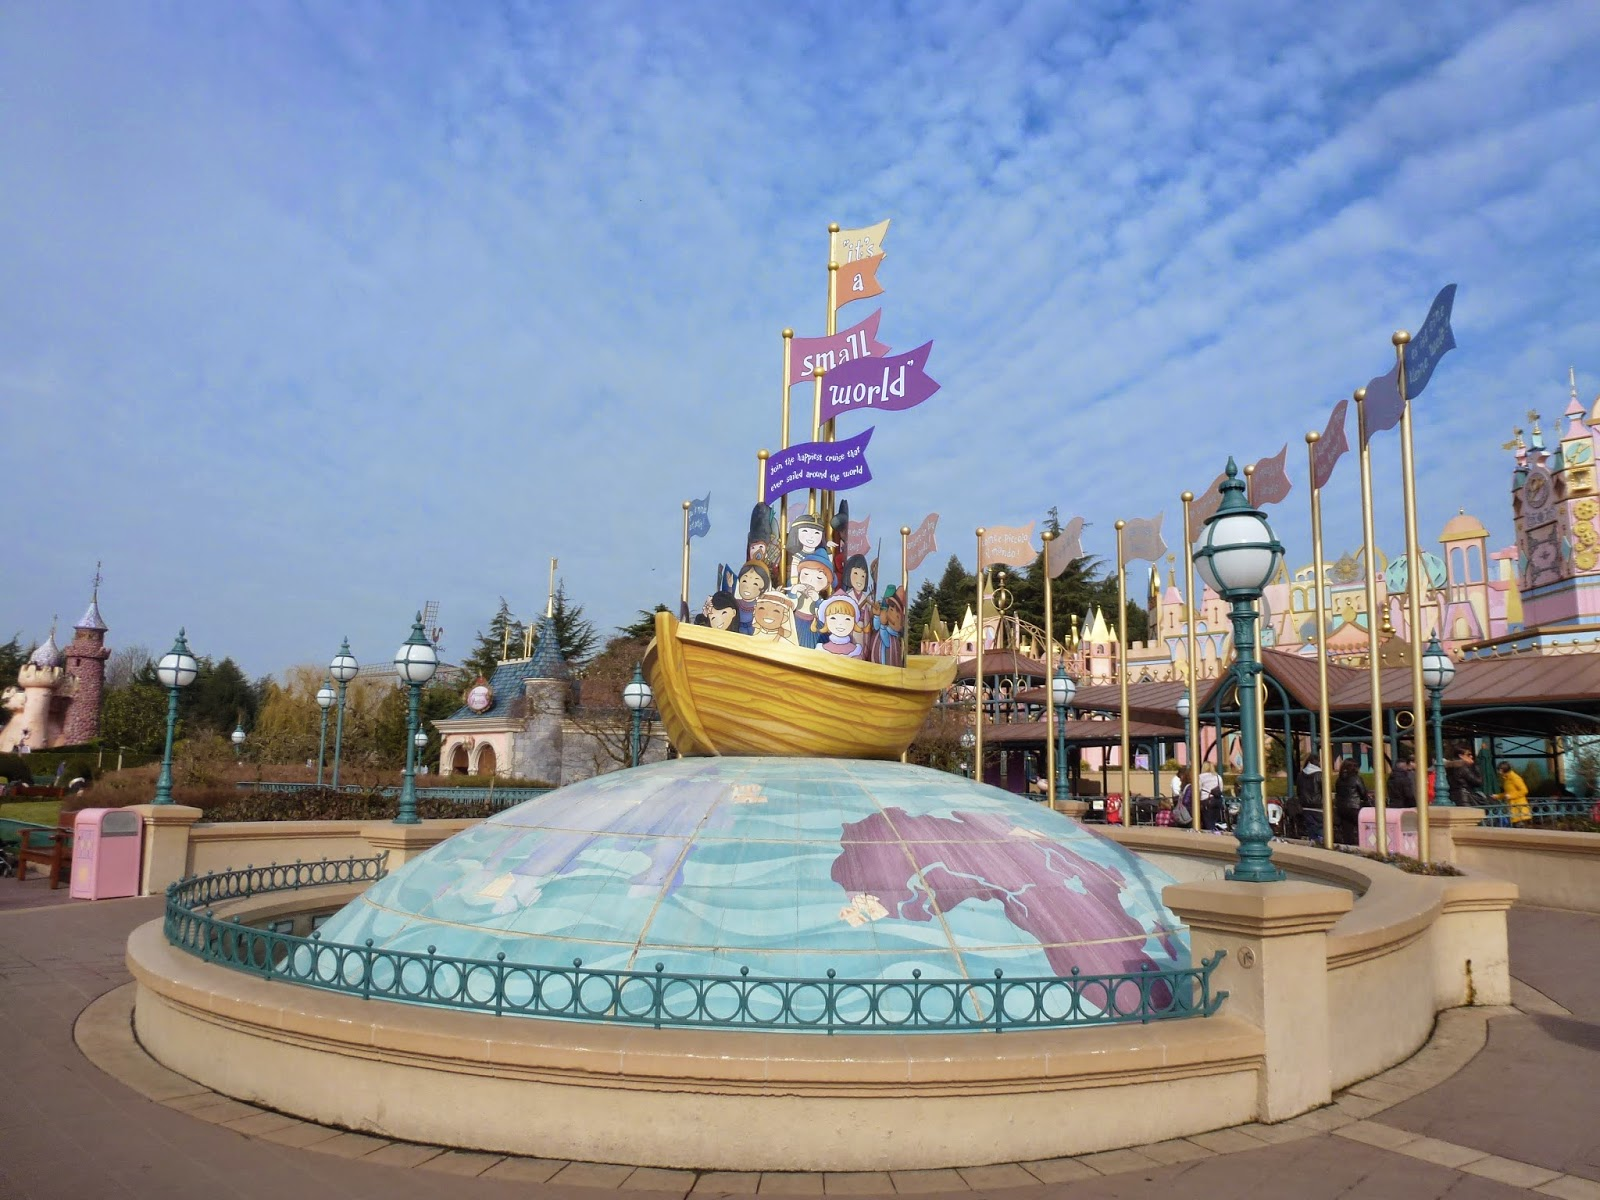 small-world-disneyland-paris